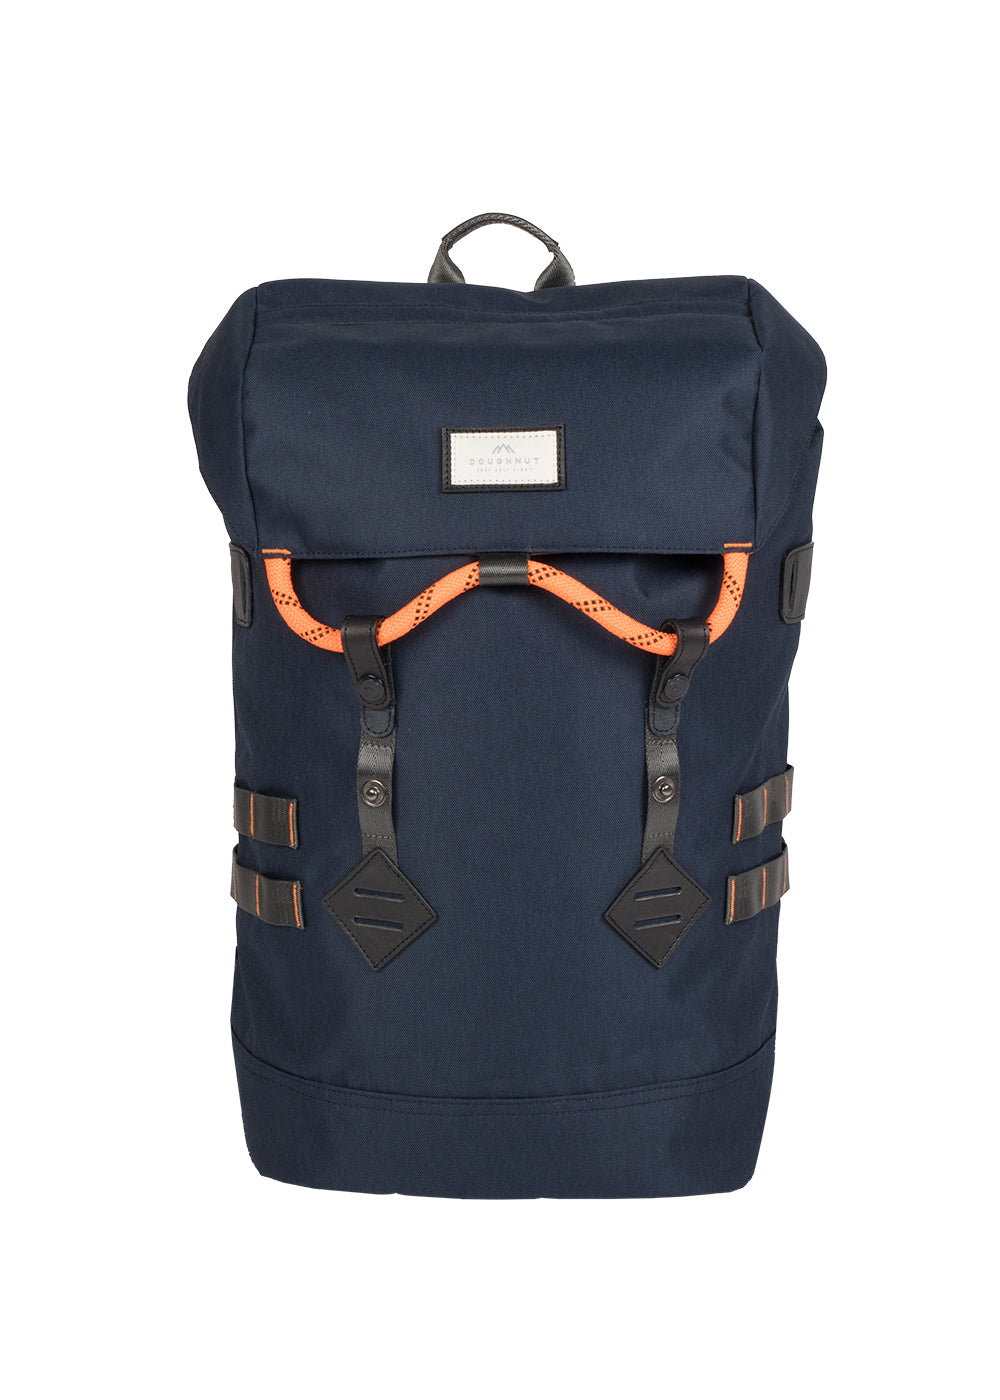 COLORADO ACCENTS SERIES Navy x Orange